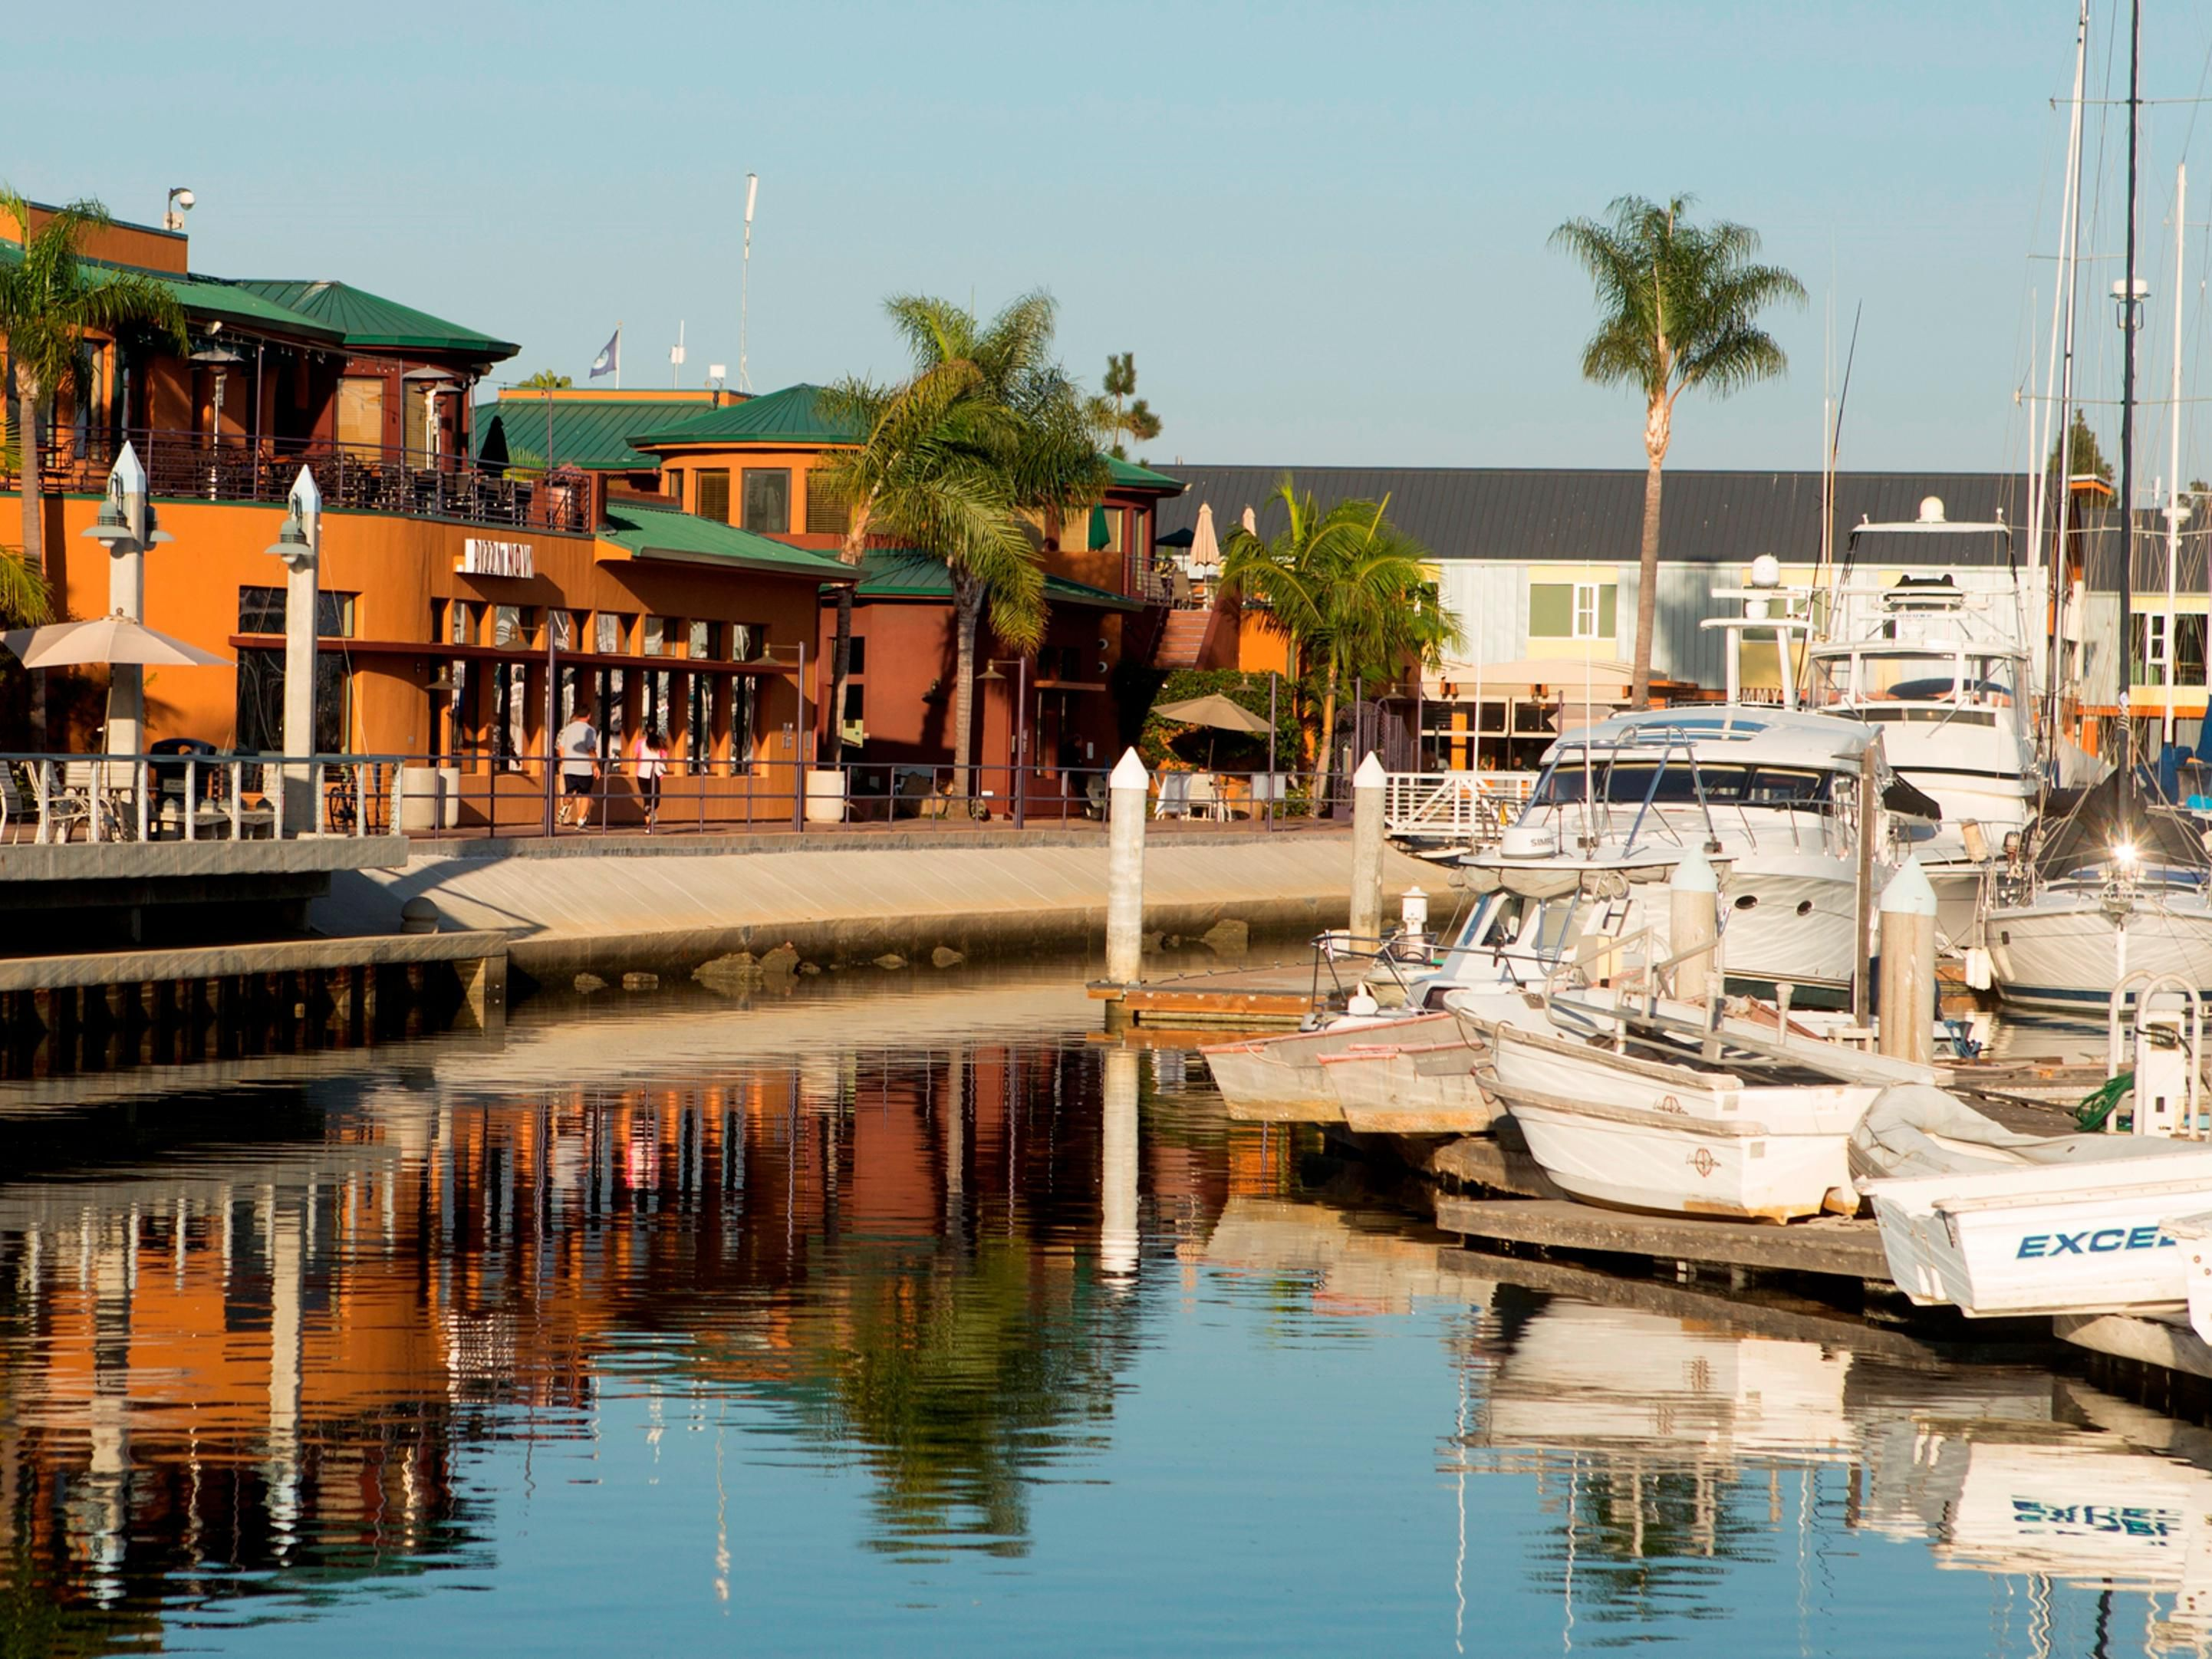 Walk to dining and sport fishing marinas across from the hotel